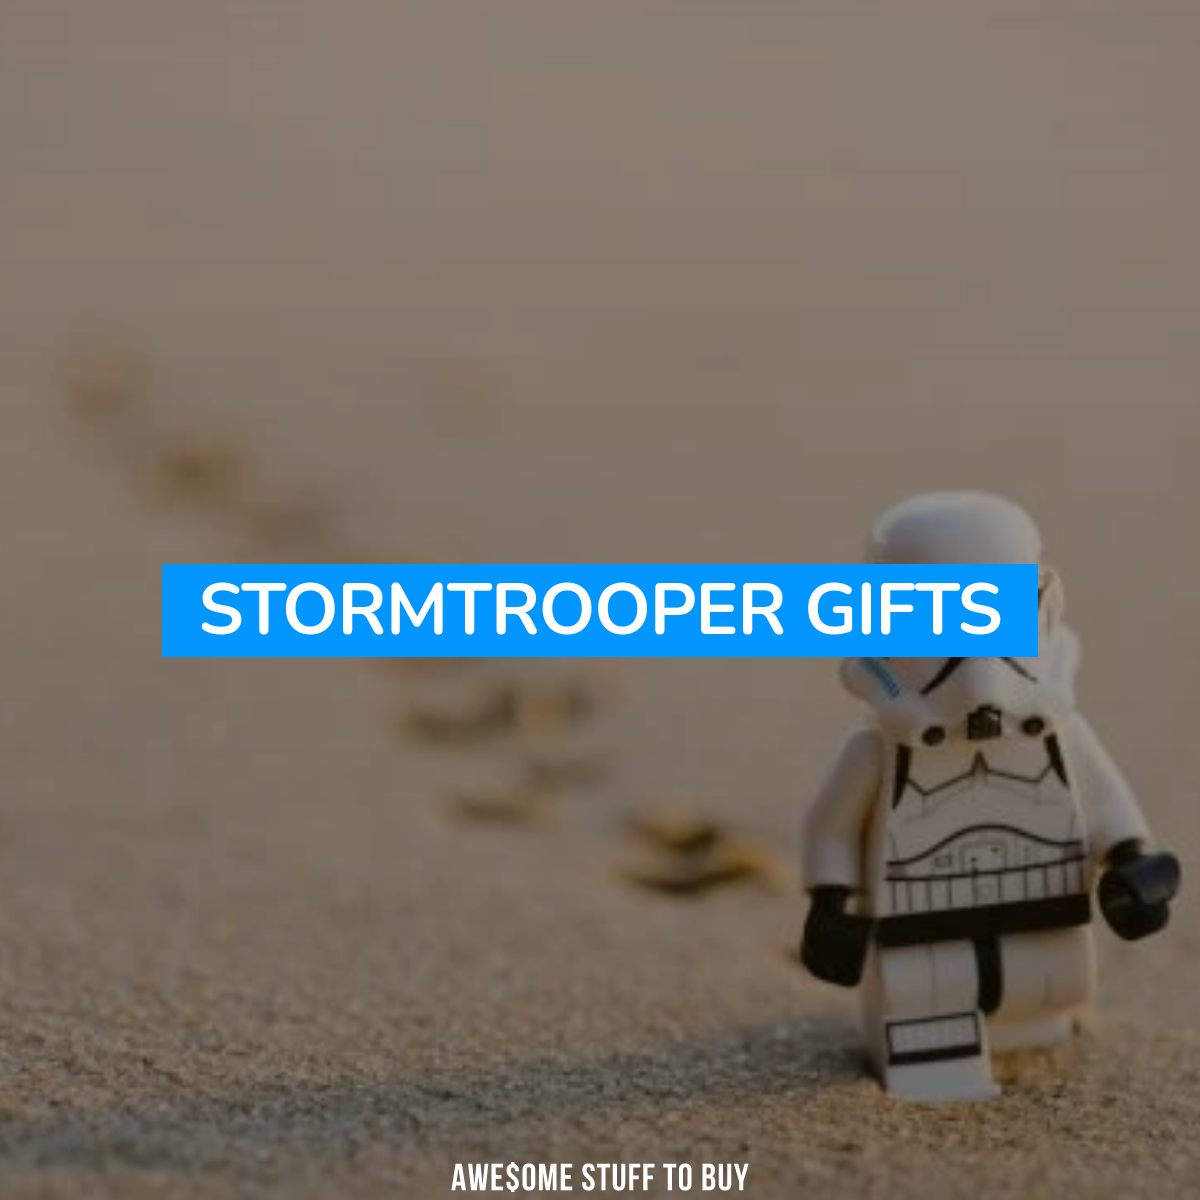 Stormtrooper Gifts // Awesome Stuff to Buy